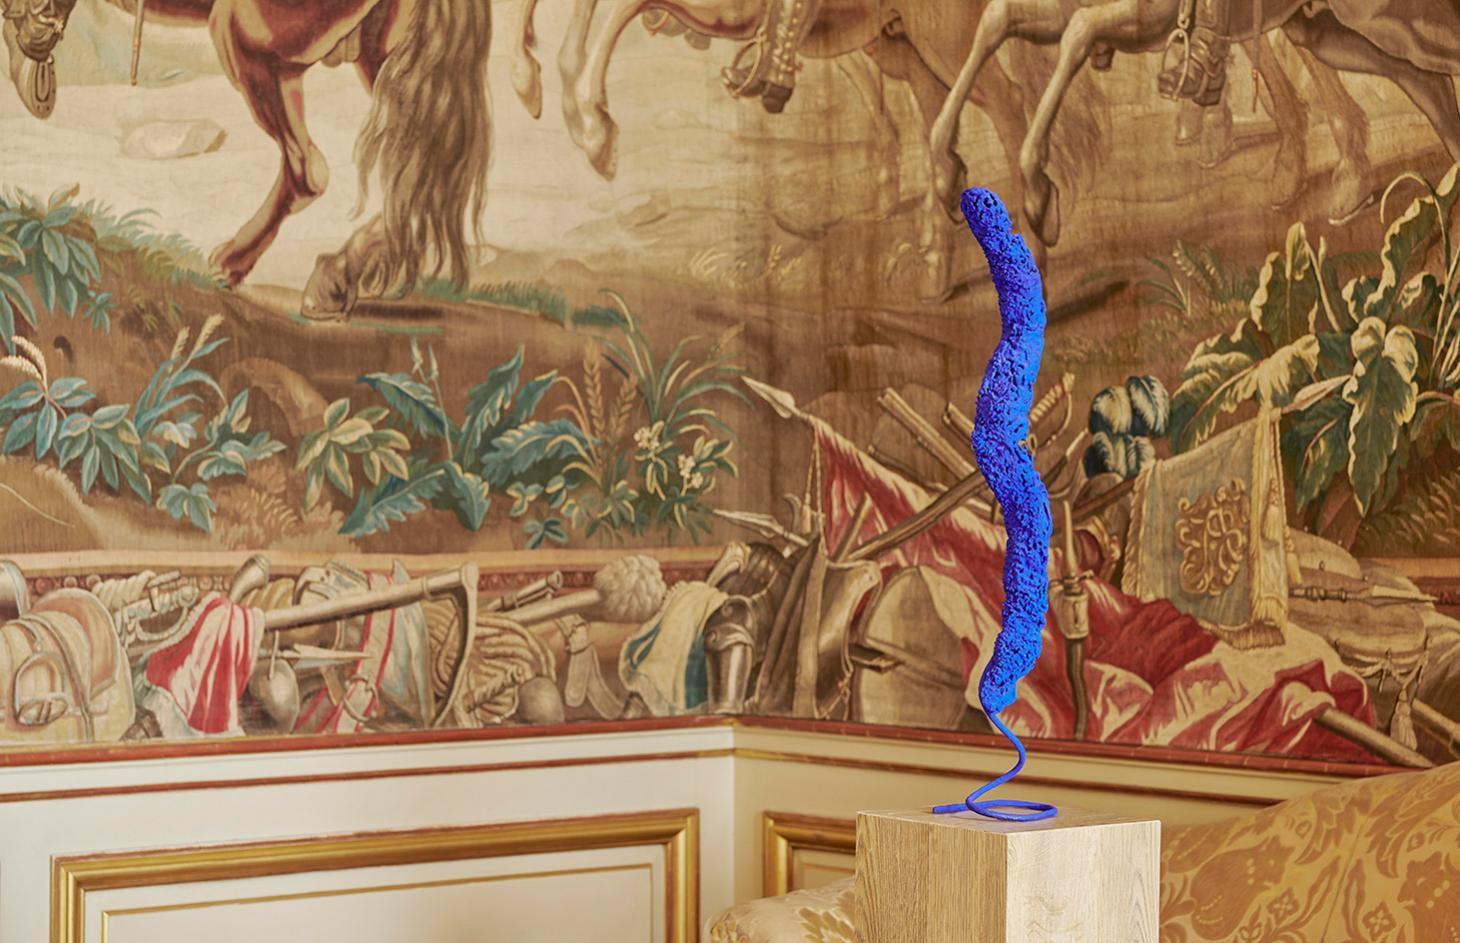 Sponge sculpture, by Yves Klein, installation view at Blenheim Palace